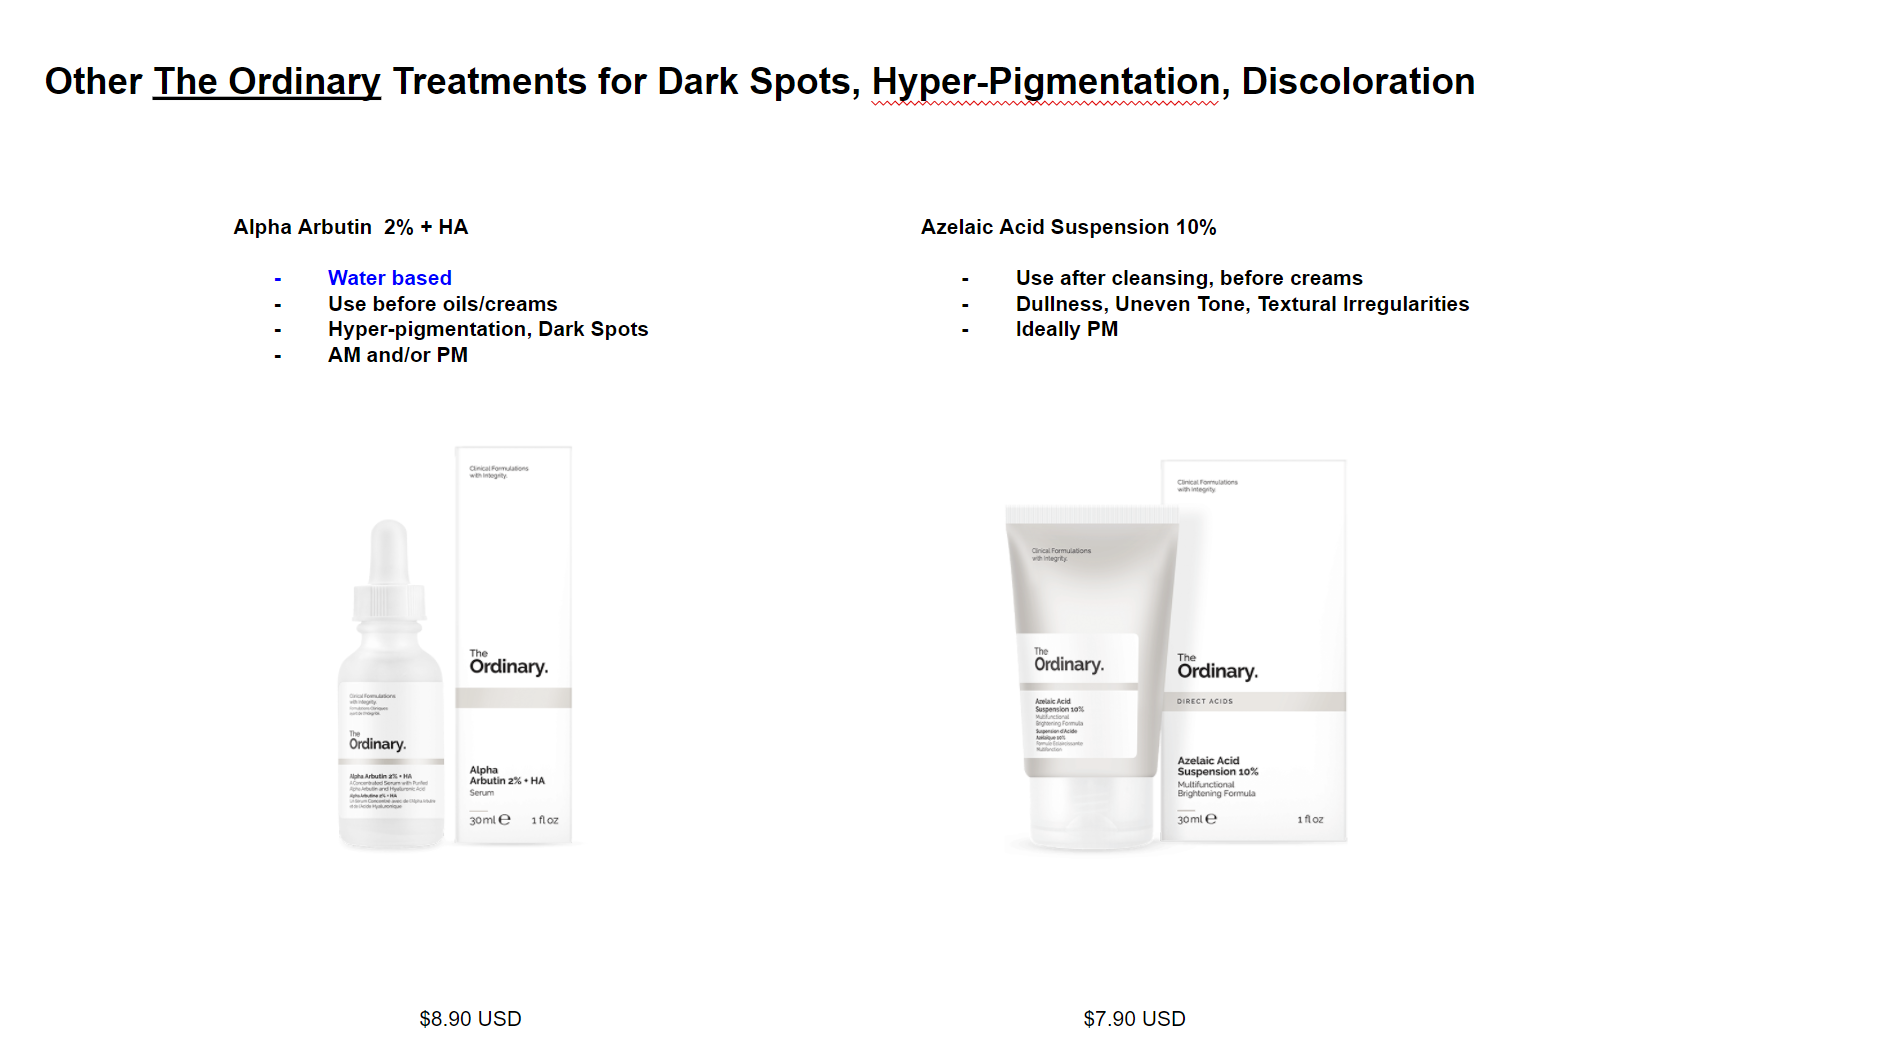 The Ordinary Treatment Guide for Dark Spots